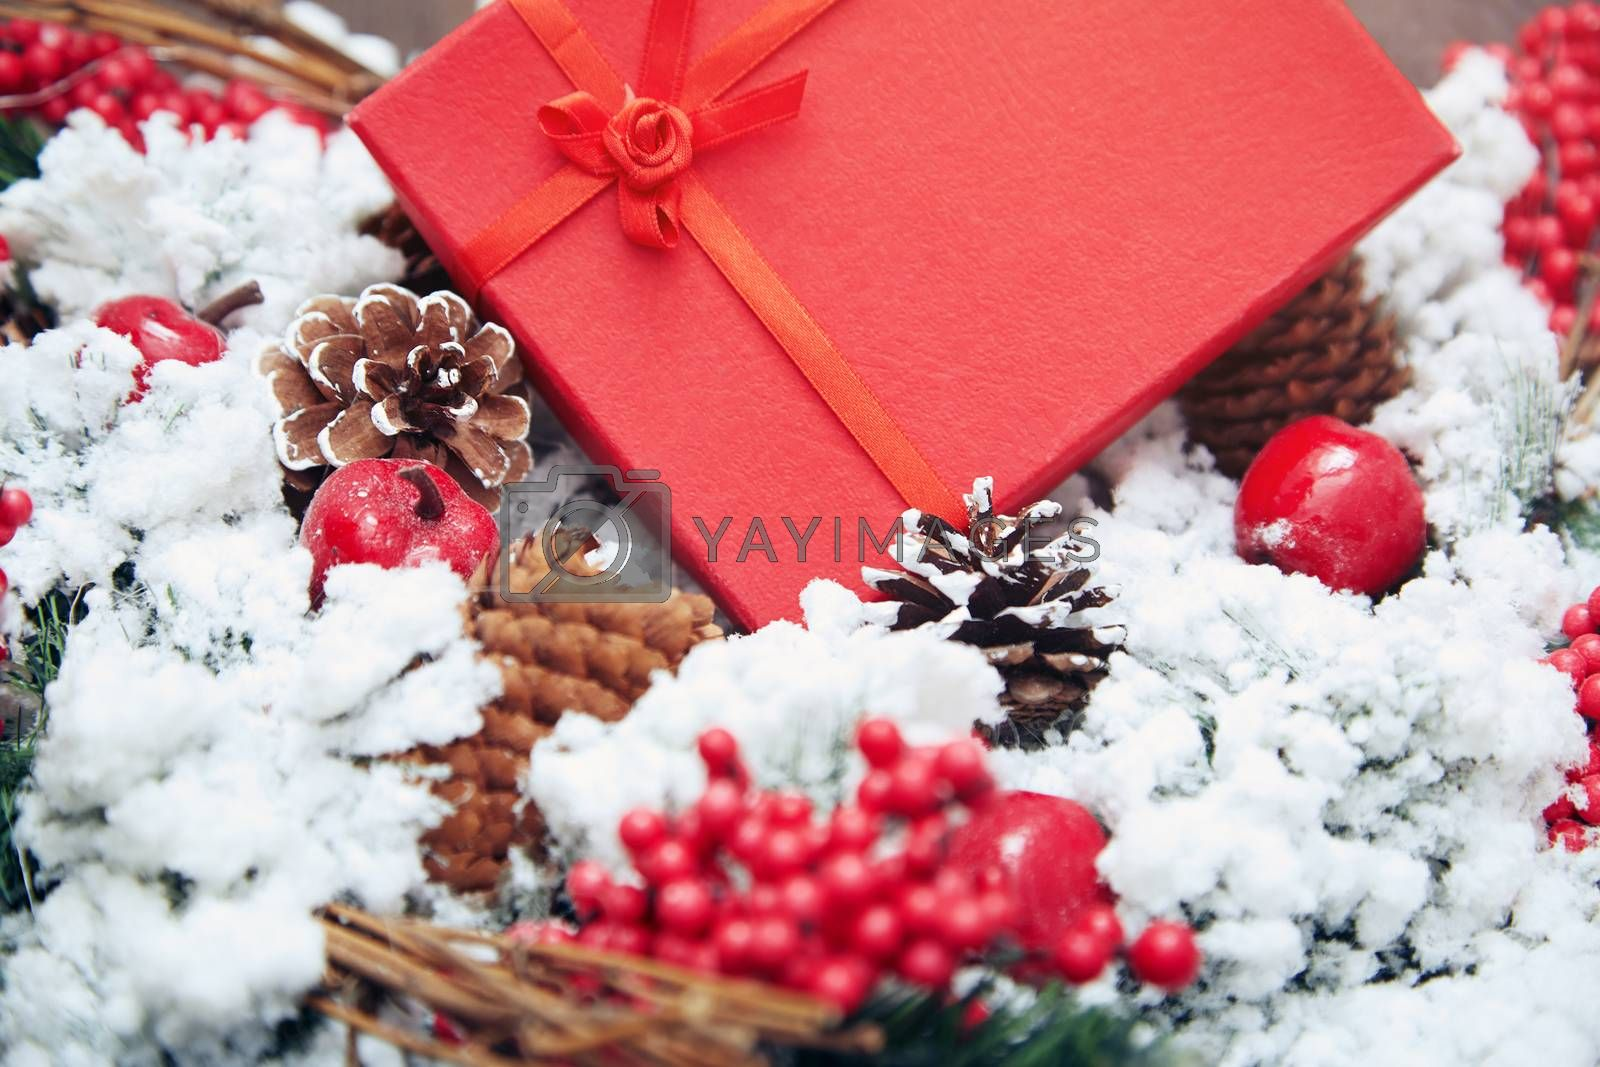 Christmas gift in a red box. Close-up horizontal photo